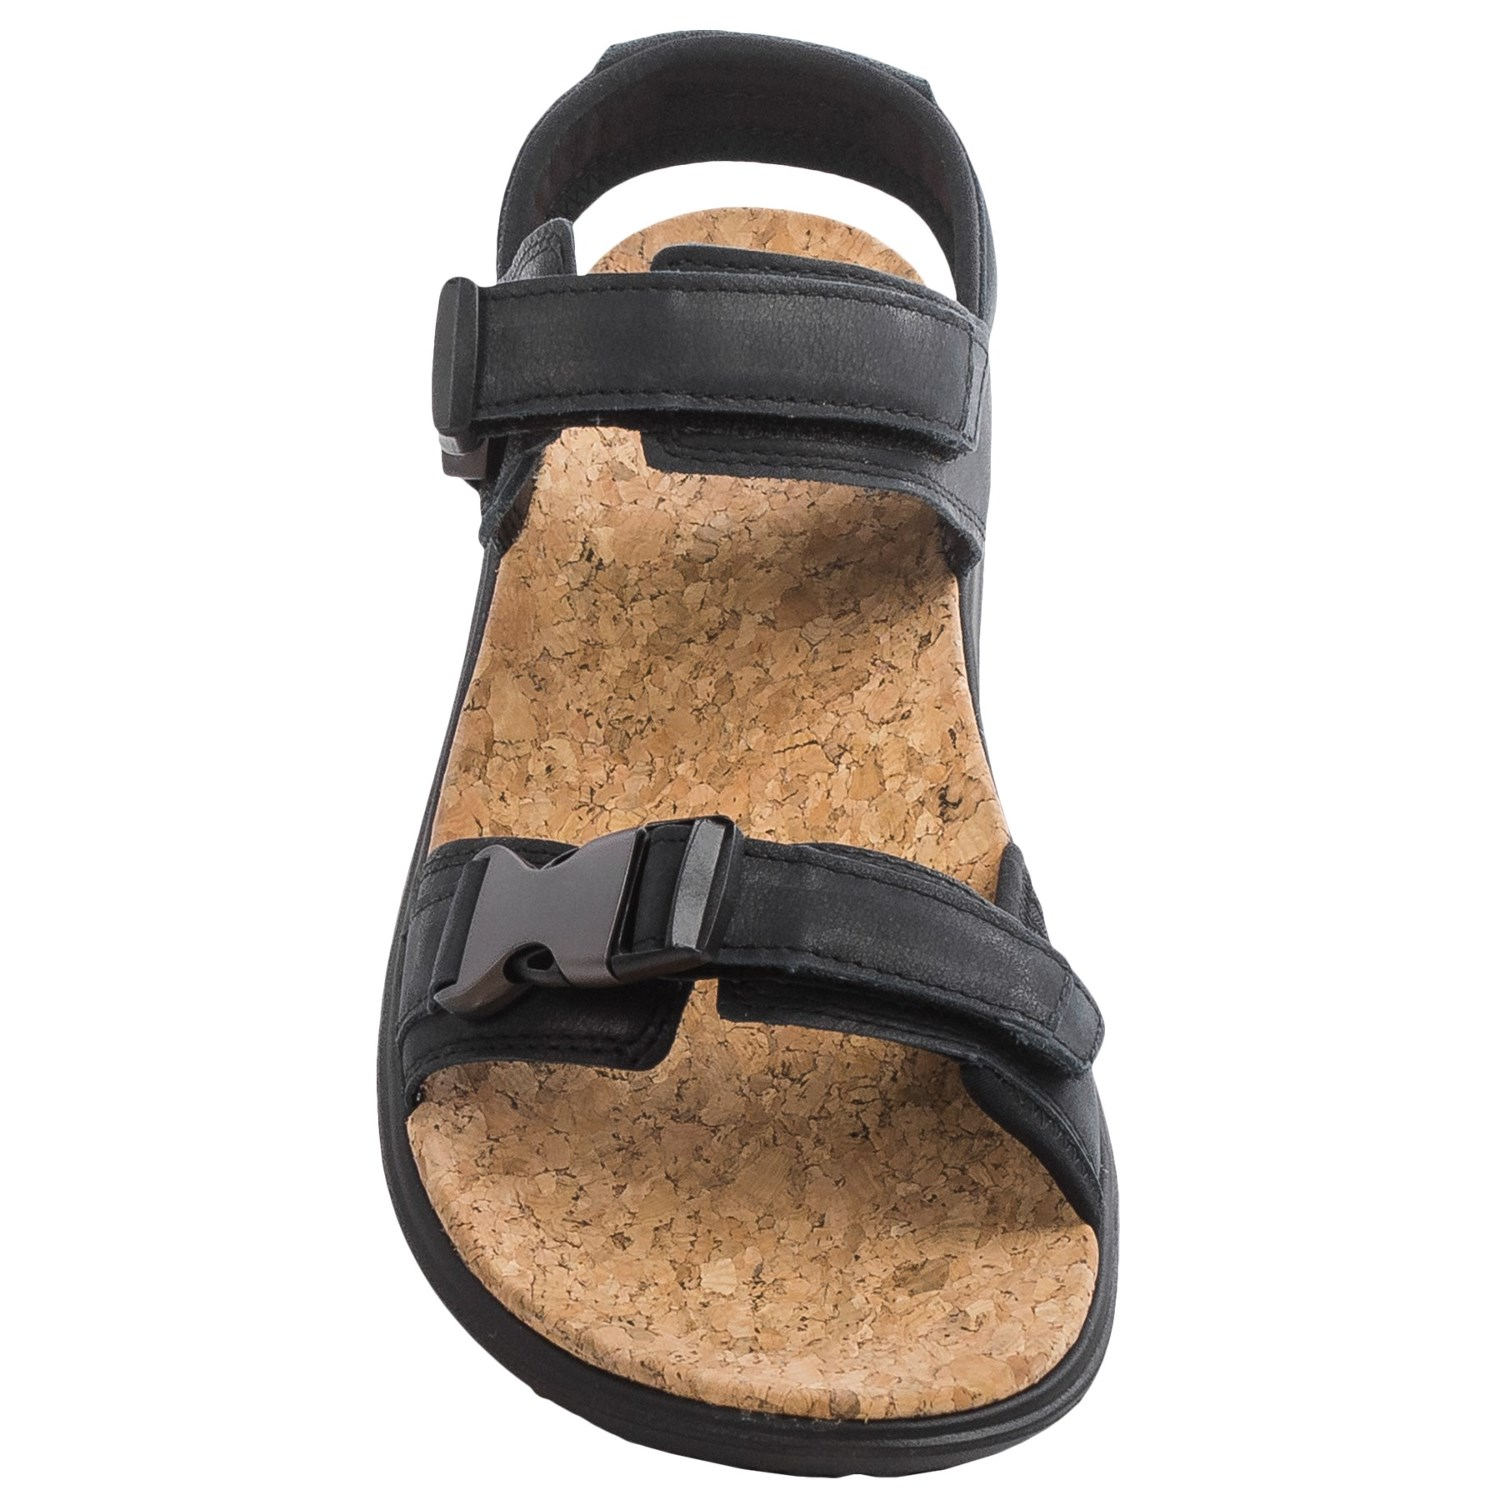 a3d0e643b78c1c Teva Terra-Float Universal Lux Sport Sandals (For Men) - Save 54%